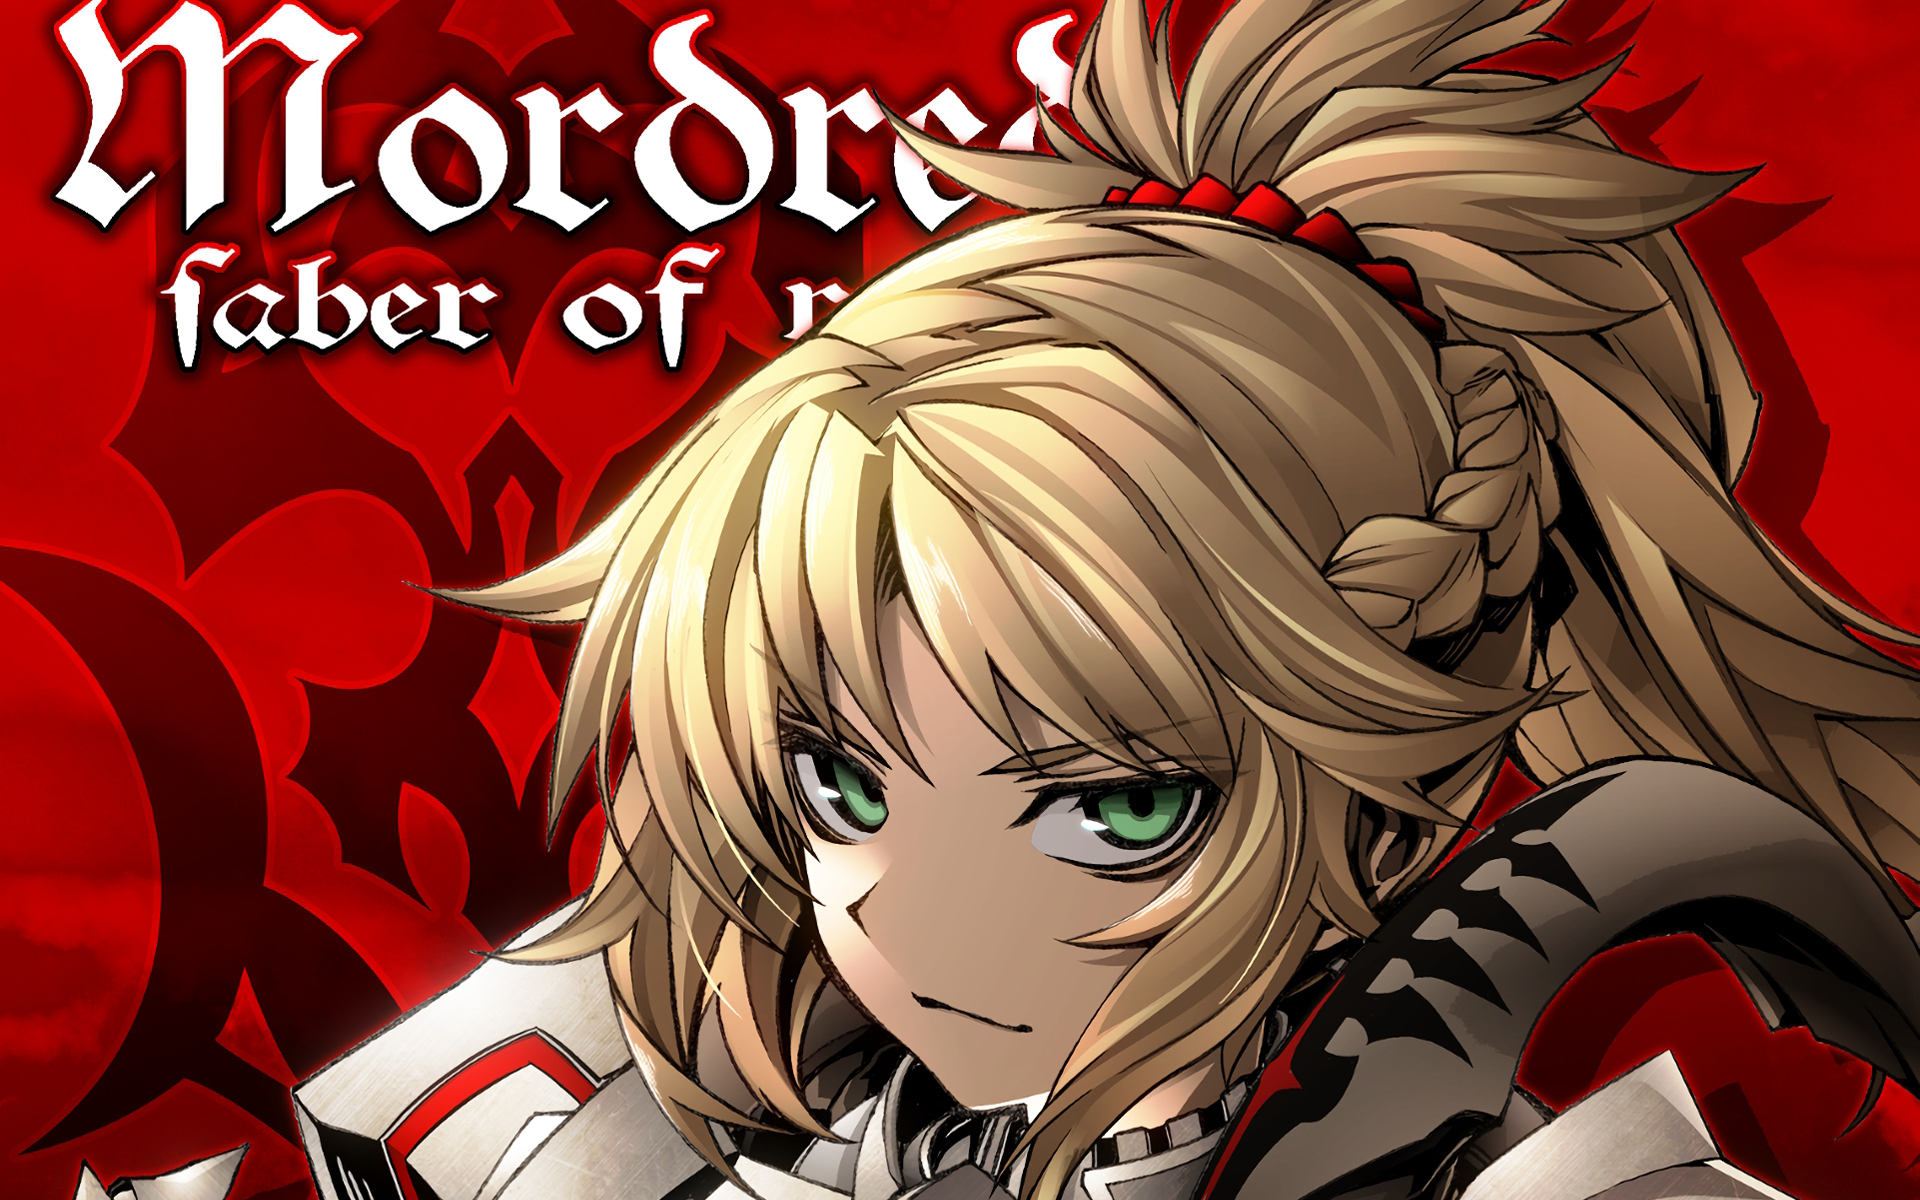 Saber Of Red Fate Apocrypha Mordred Fate Apocrypha 1920x1200